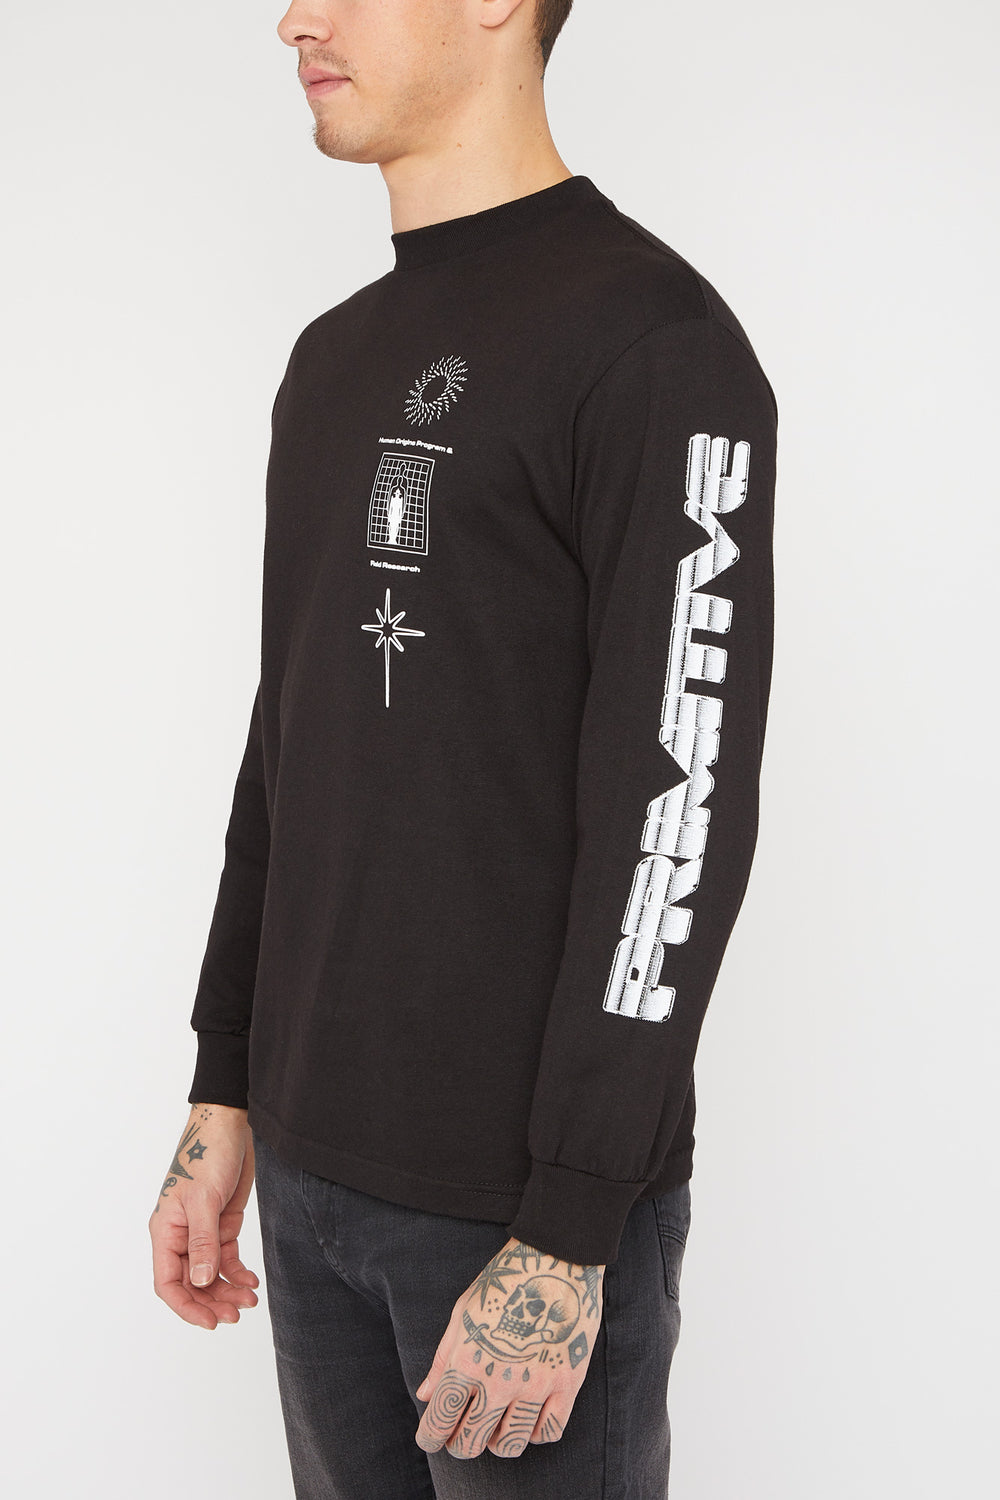 Primitive Origins Long Sleeve Black